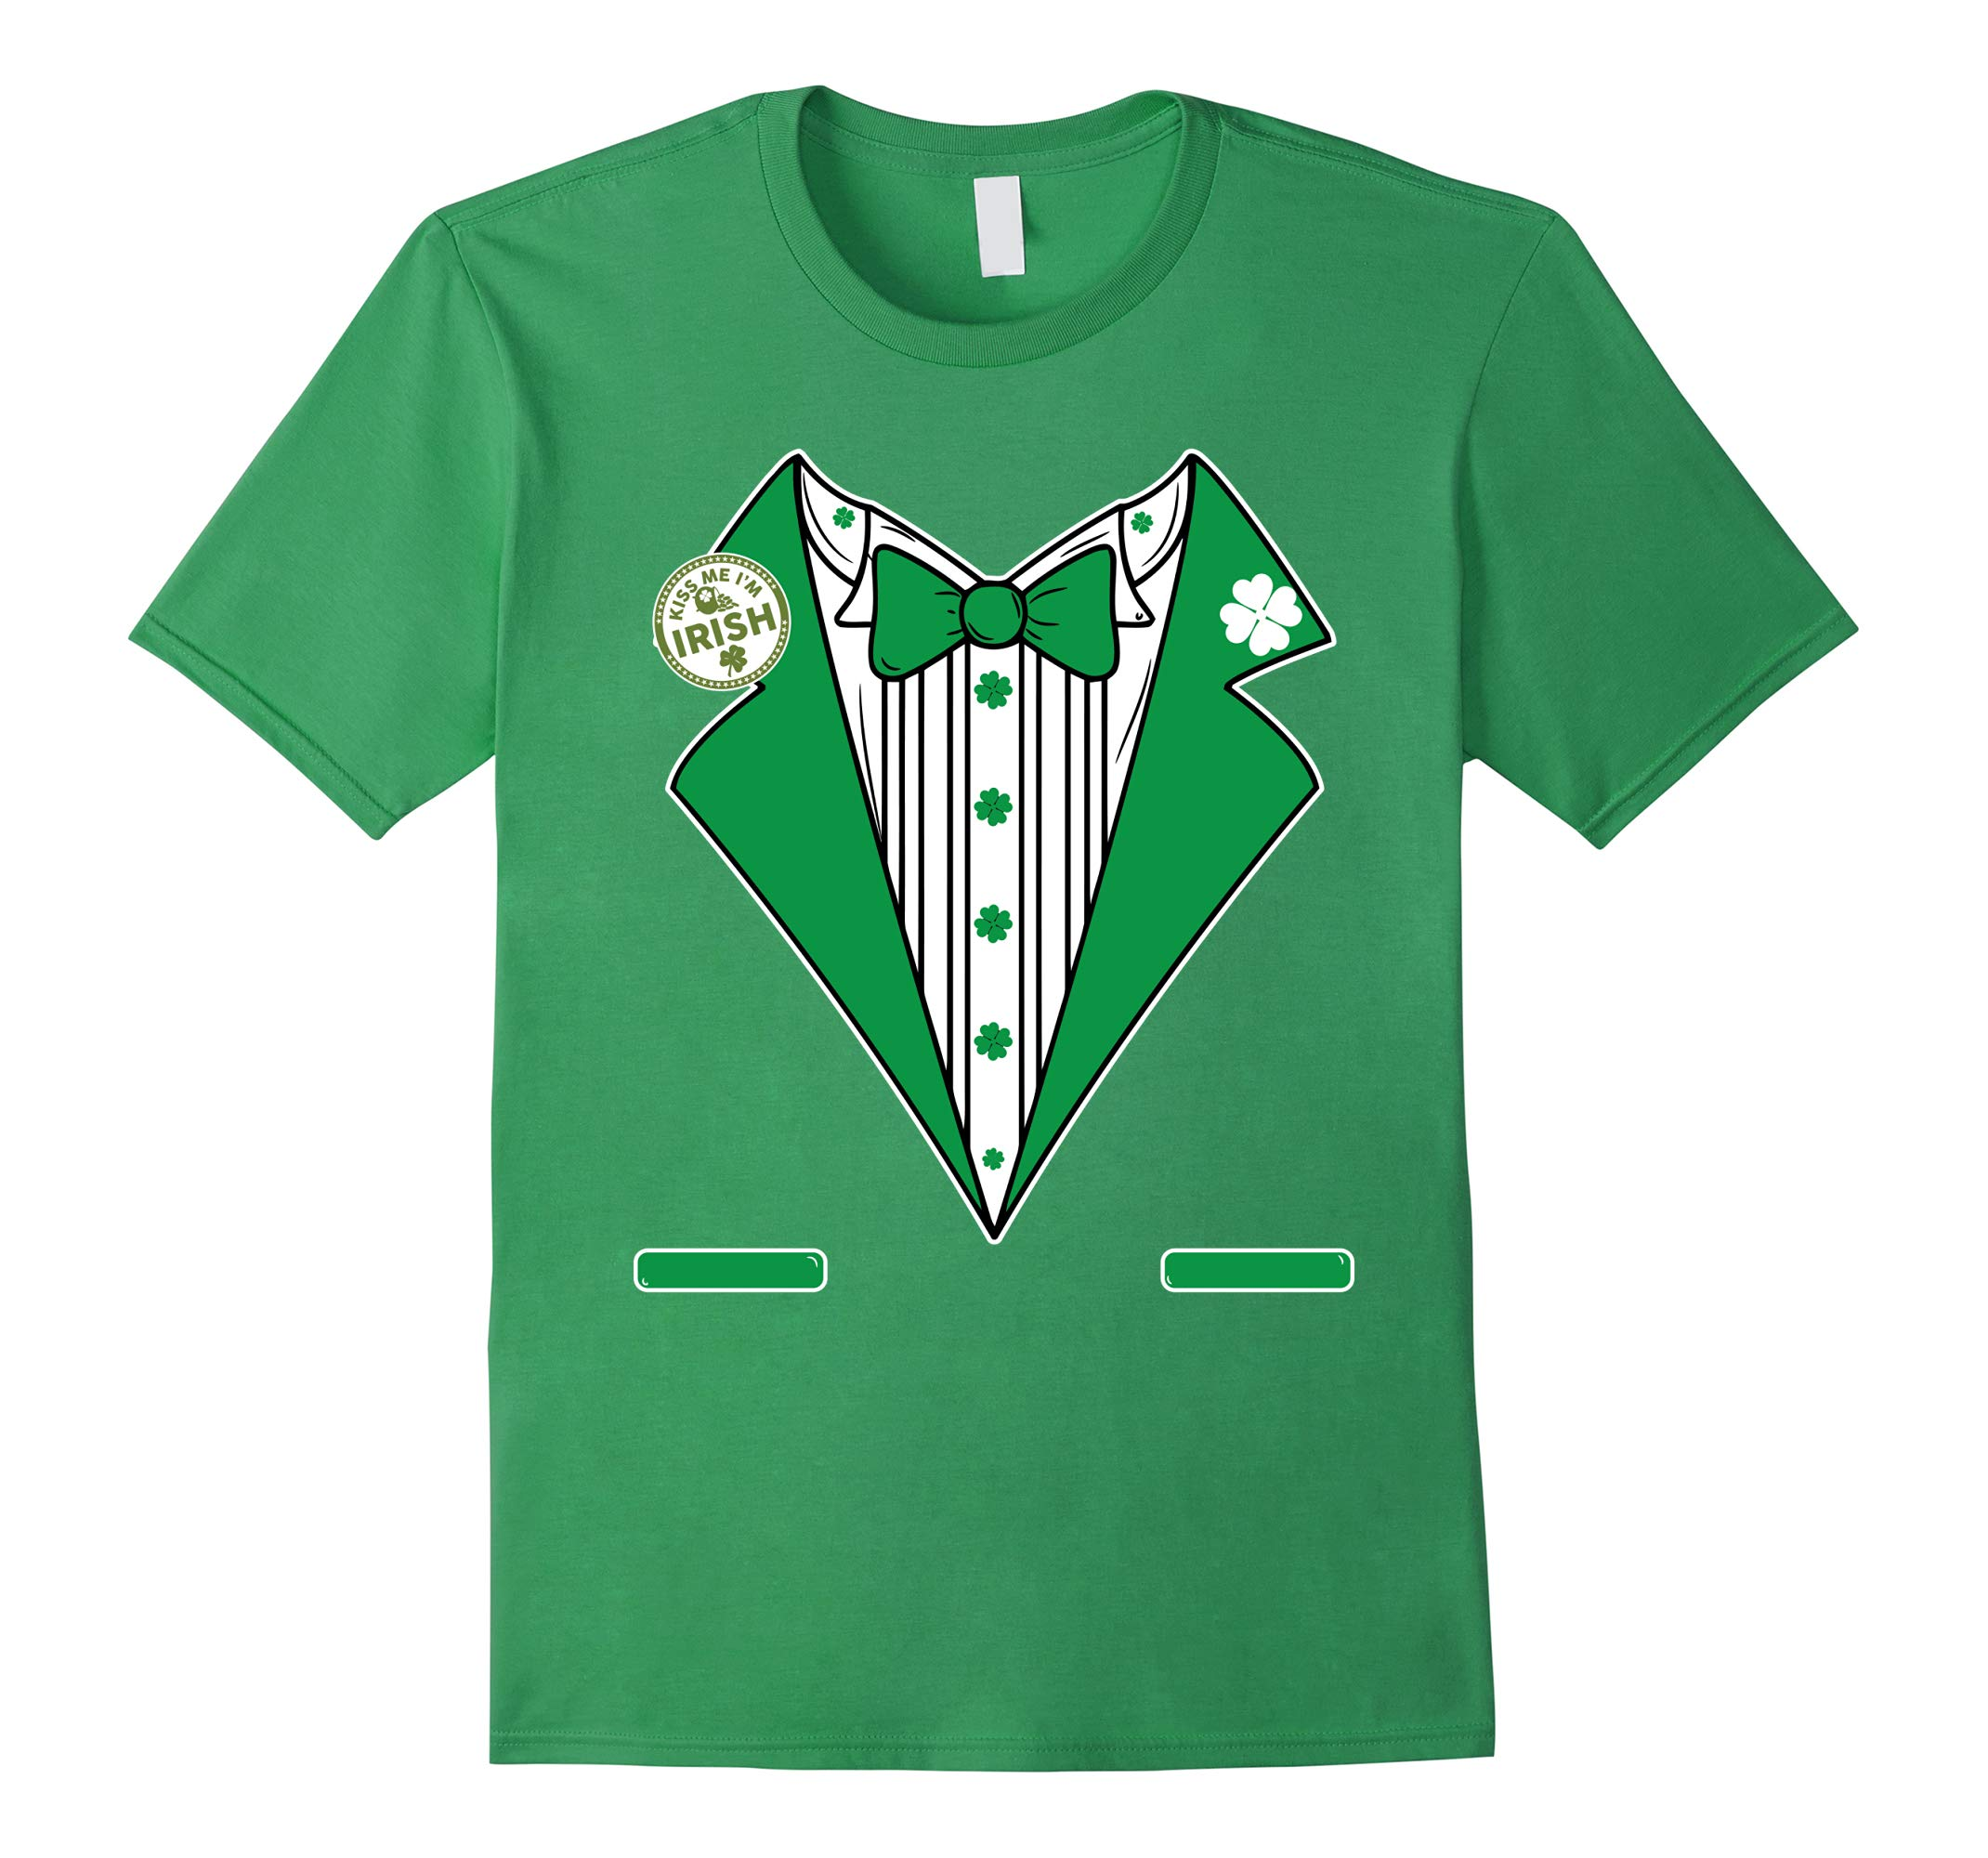 St. Patricks Day Tux Tee Shirt - Green Pattys Day Costume-RT